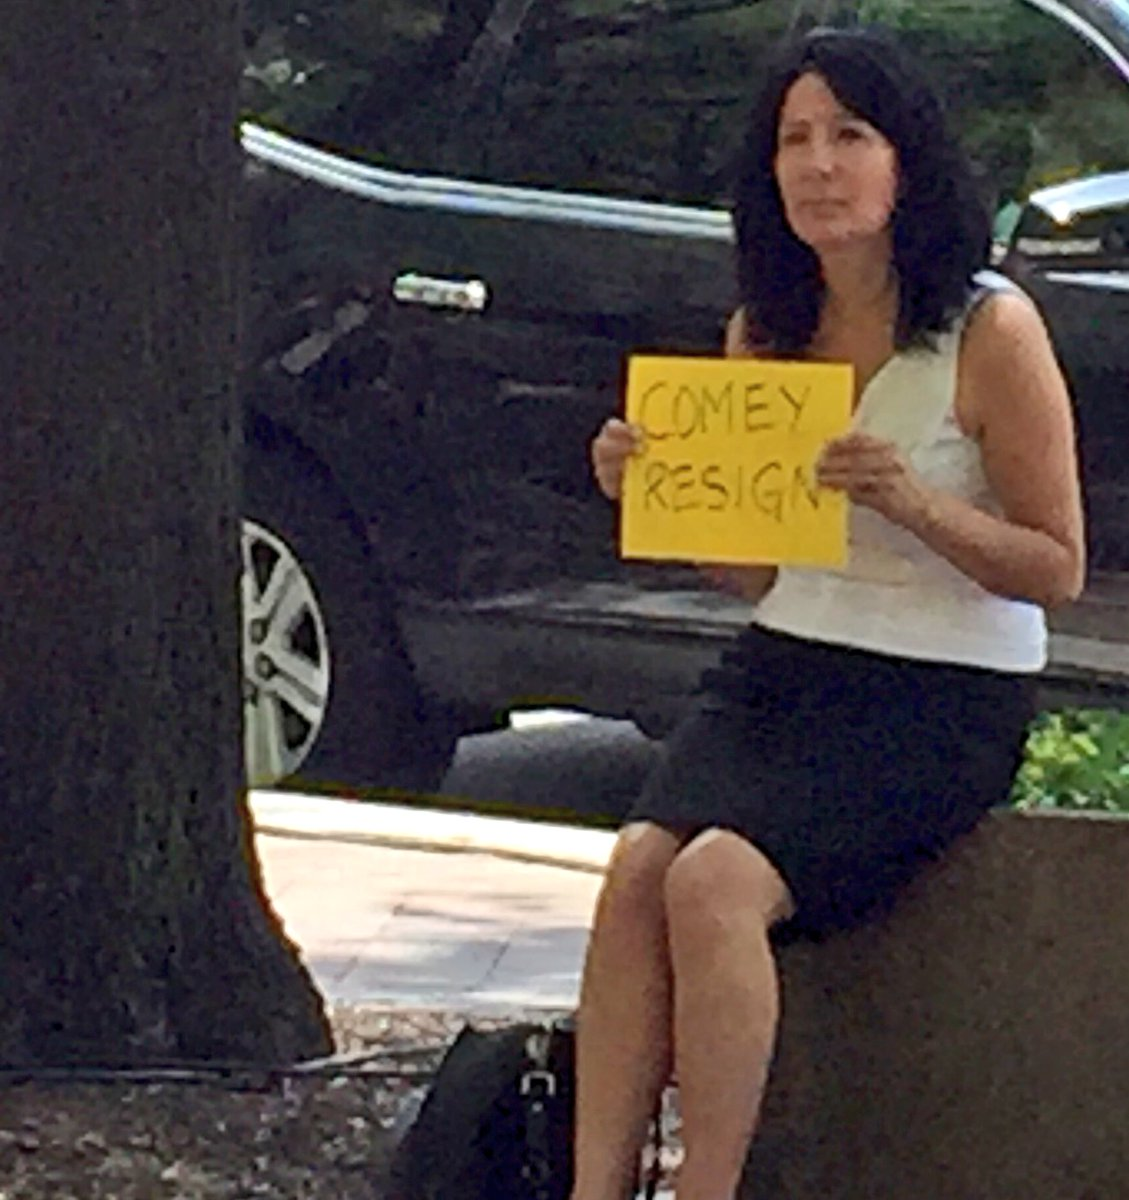 Woman outside @FBI HQ https://t.co/hWxj2BtaE8